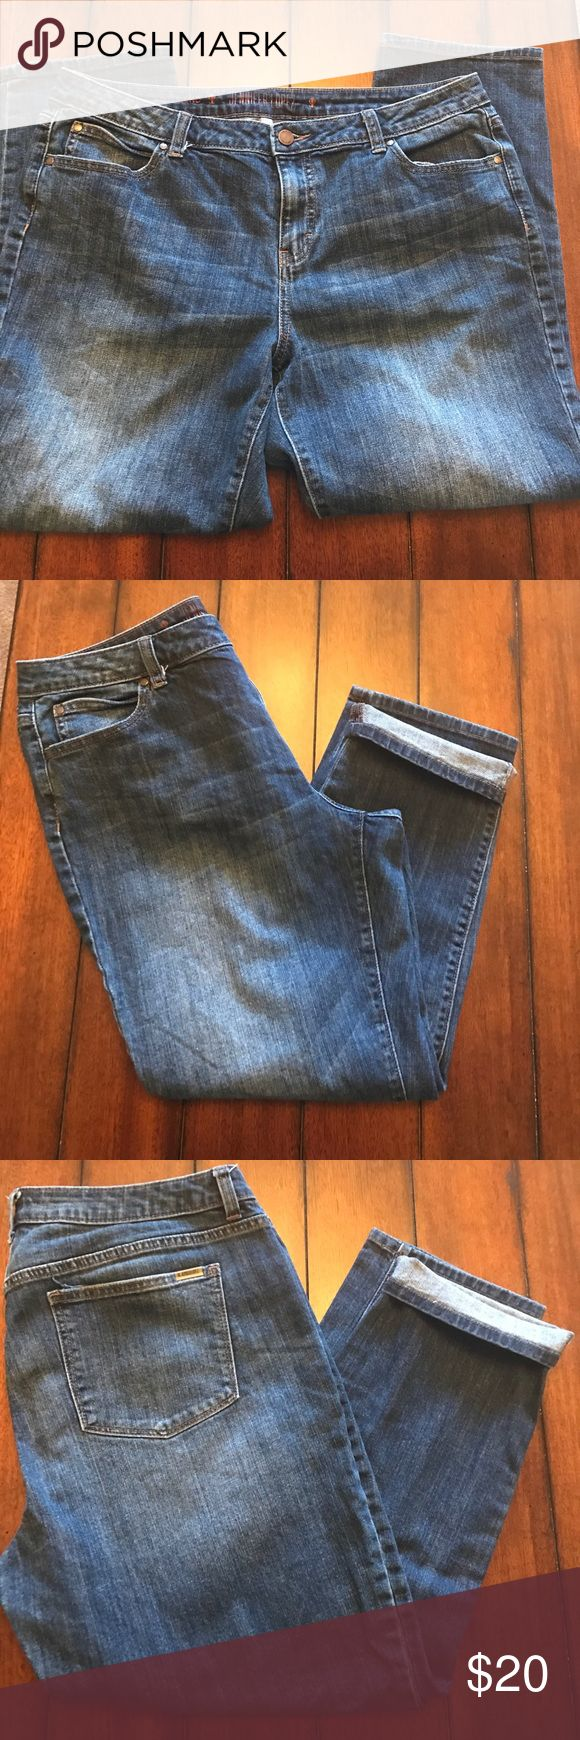 Jennifer Lopez Boyfriend Jeans Dark/medium wash boyfriend jeans. In excellent condition wear cuffed or I cuffed. Super cute with a pair of flats or flip flops. From a smoke free, clean home. Jennifer Lopez Jeans Ankle & Cropped